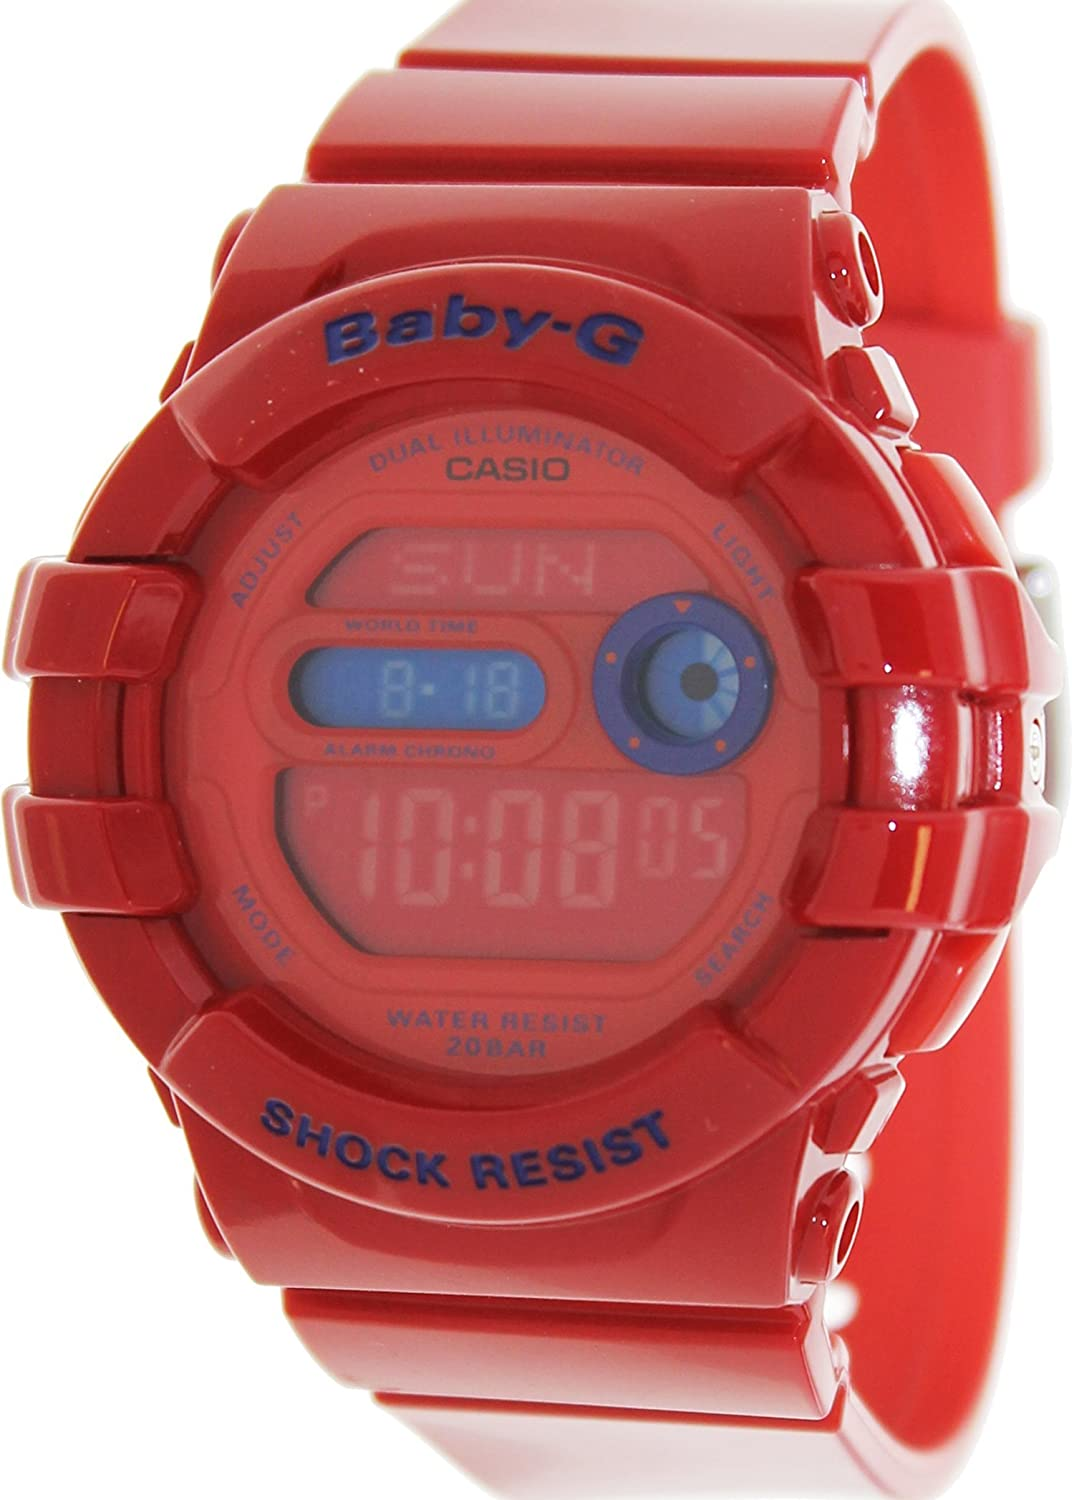 Casio Womens Baby G Bgd140 4 Red Resin Quartz Watch Babyg Bg 169r 4bdr With Digital Dial Watches